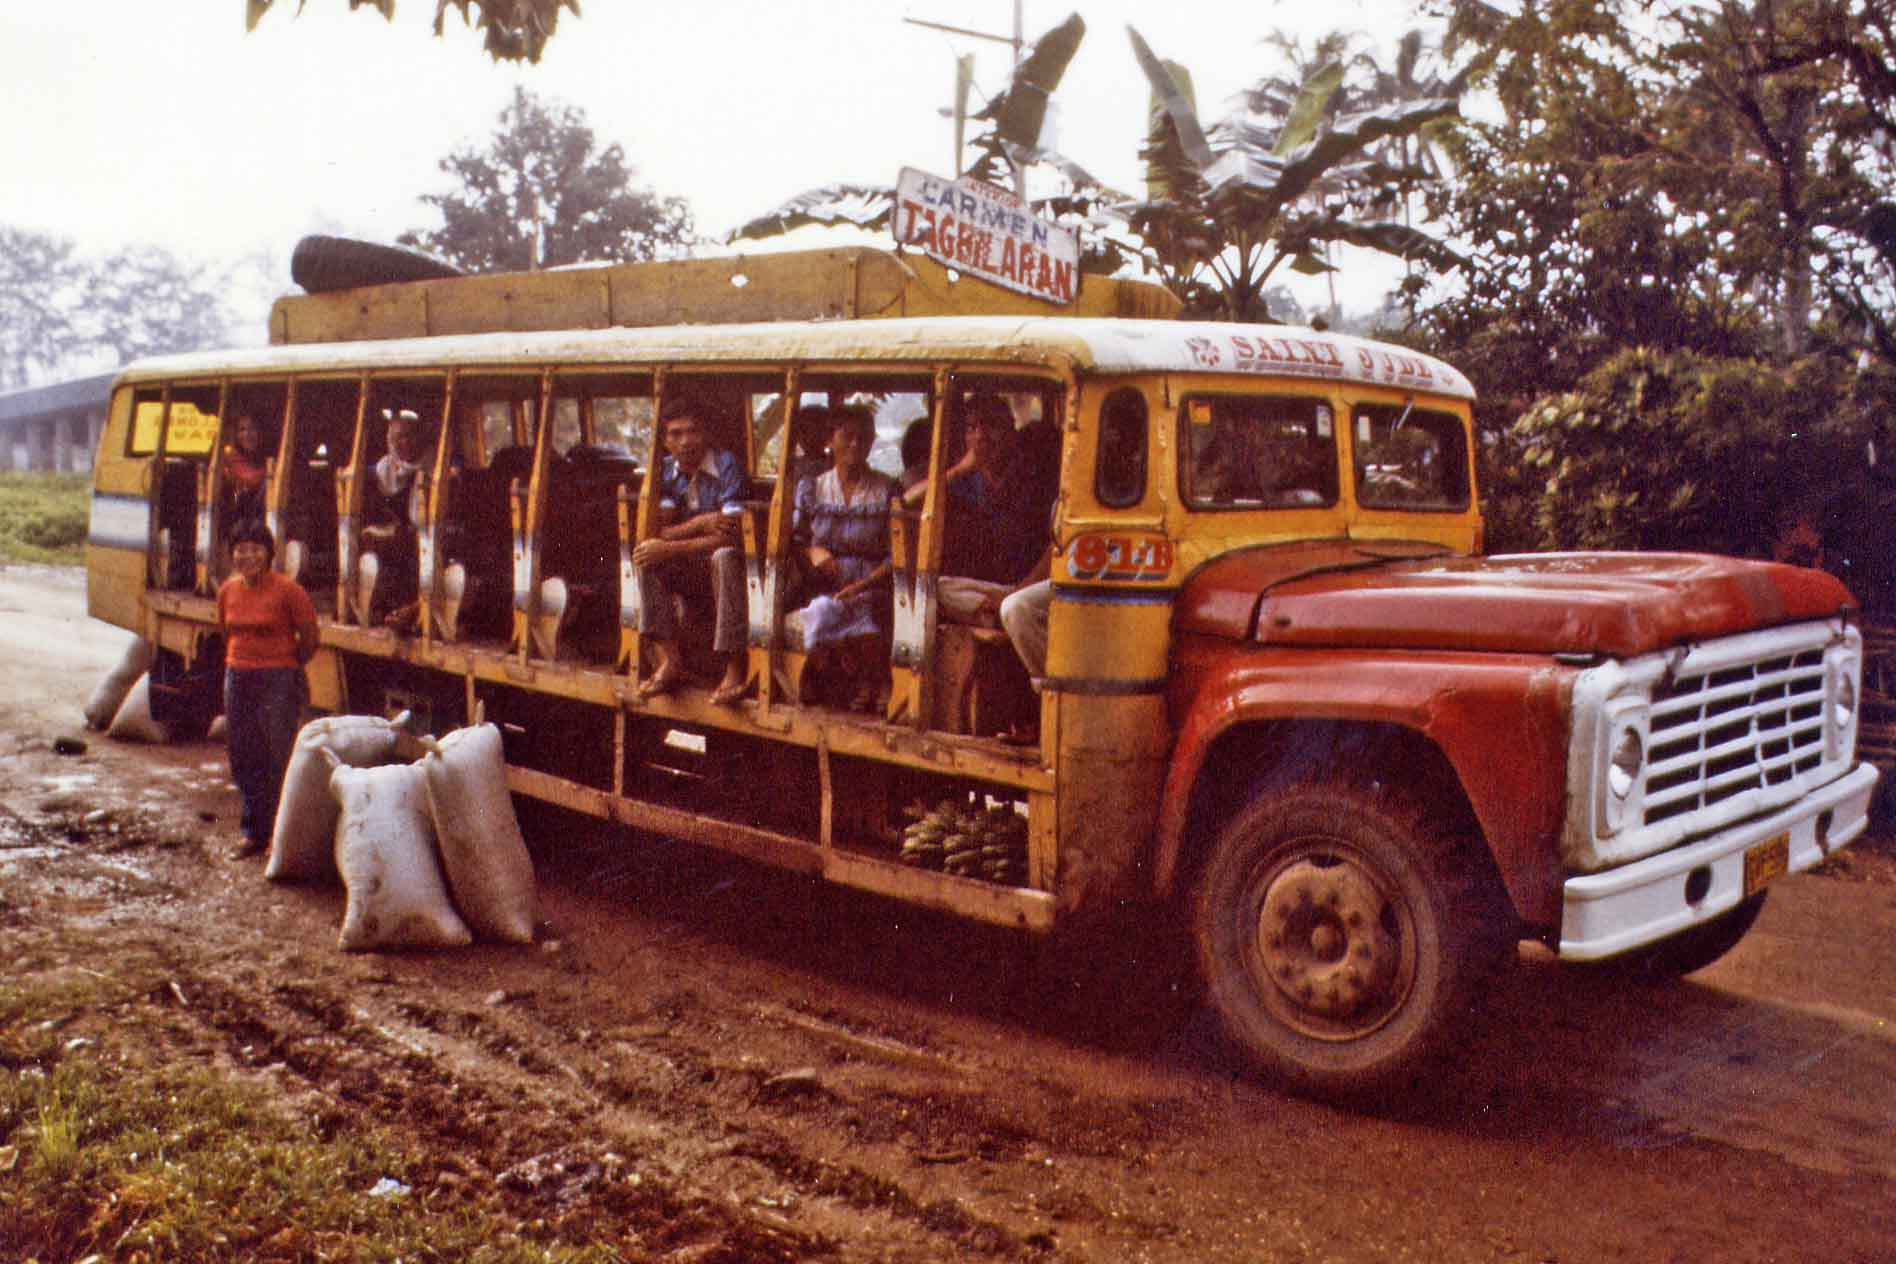 Bus on Bohol, Philippines